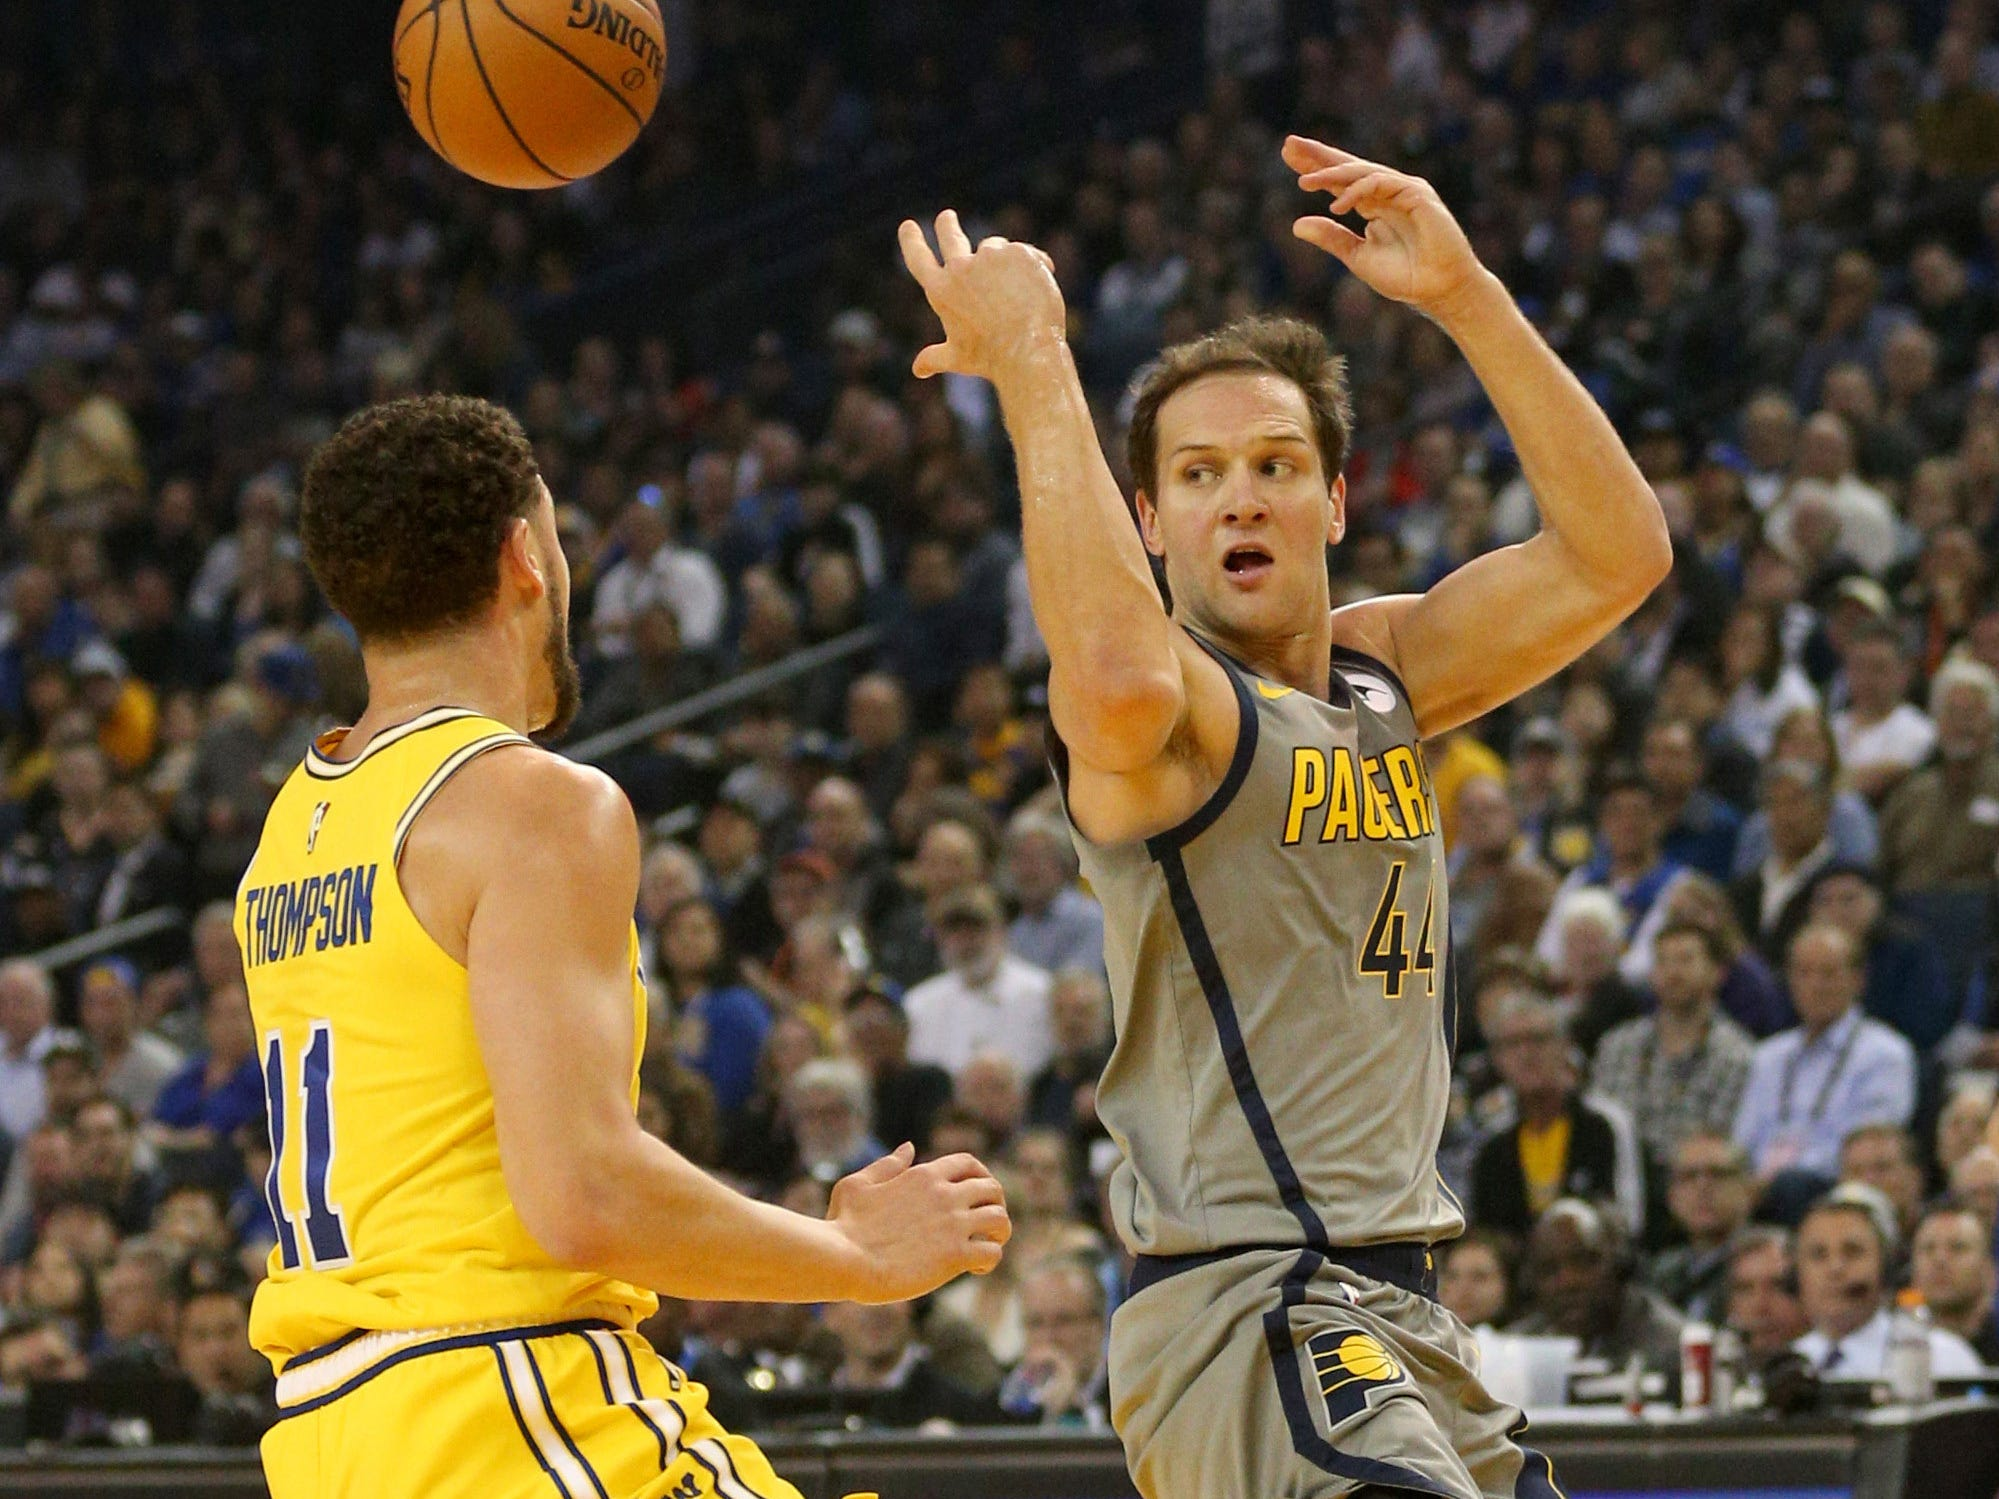 Mar 21, 2019; Oakland, CA, USA; Indiana Pacers forward Bojan Bogdanovic (44) throws a pass away from the reach of Golden State Warriors guard Klay Thompson (11) in the first quarter at Oracle Arena.